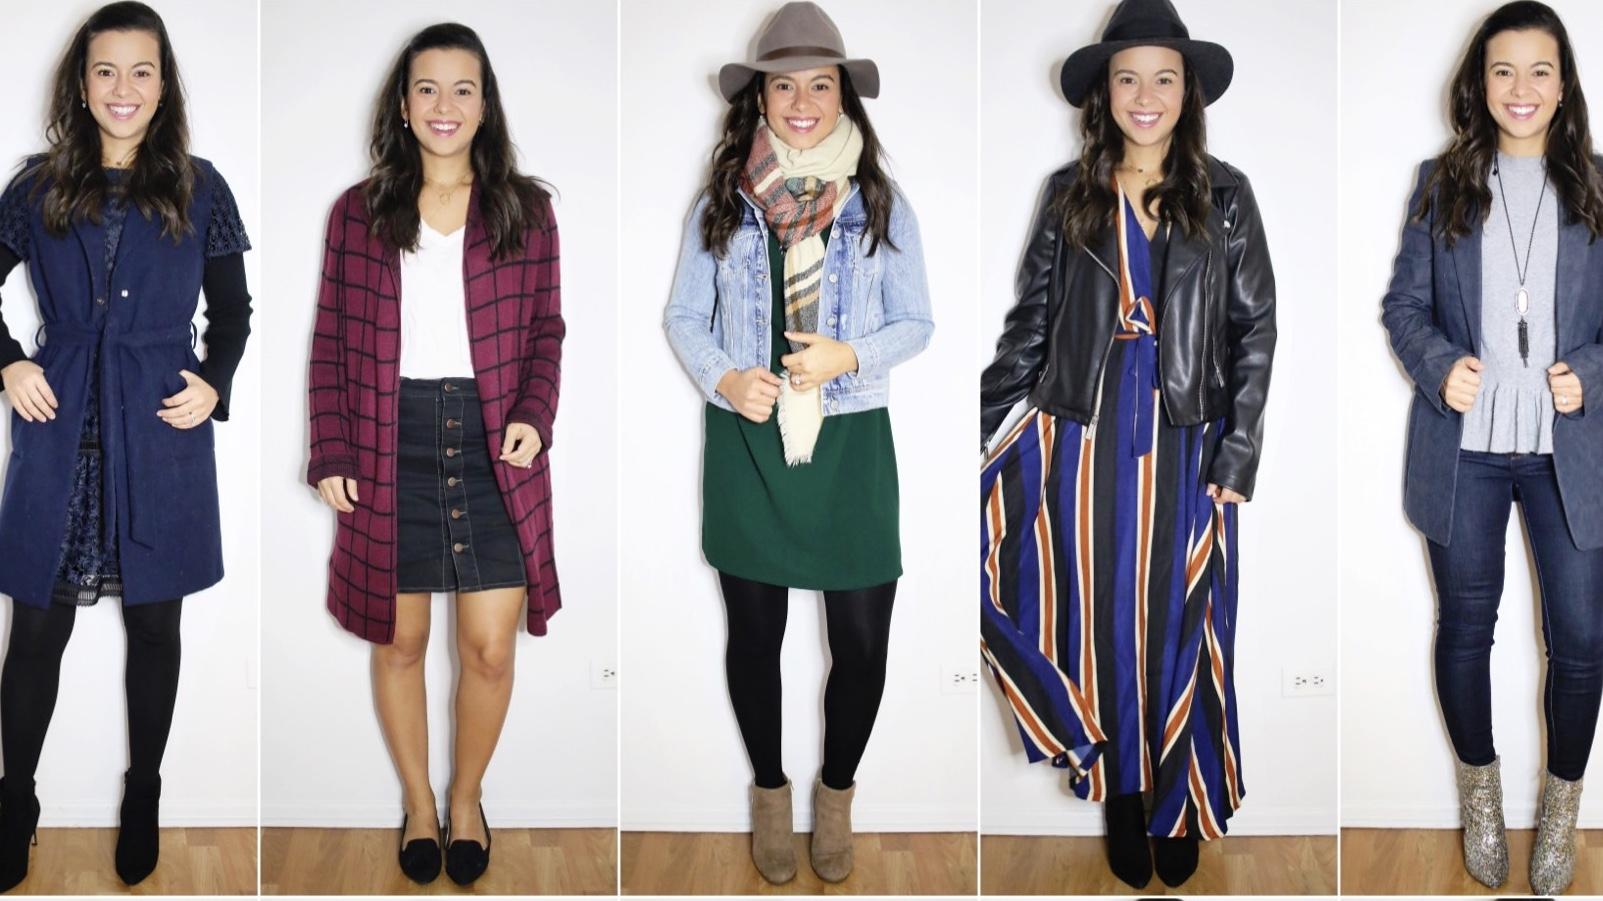 Weekly looks – 5 pieces, 10 looks with basic pieces to recreate